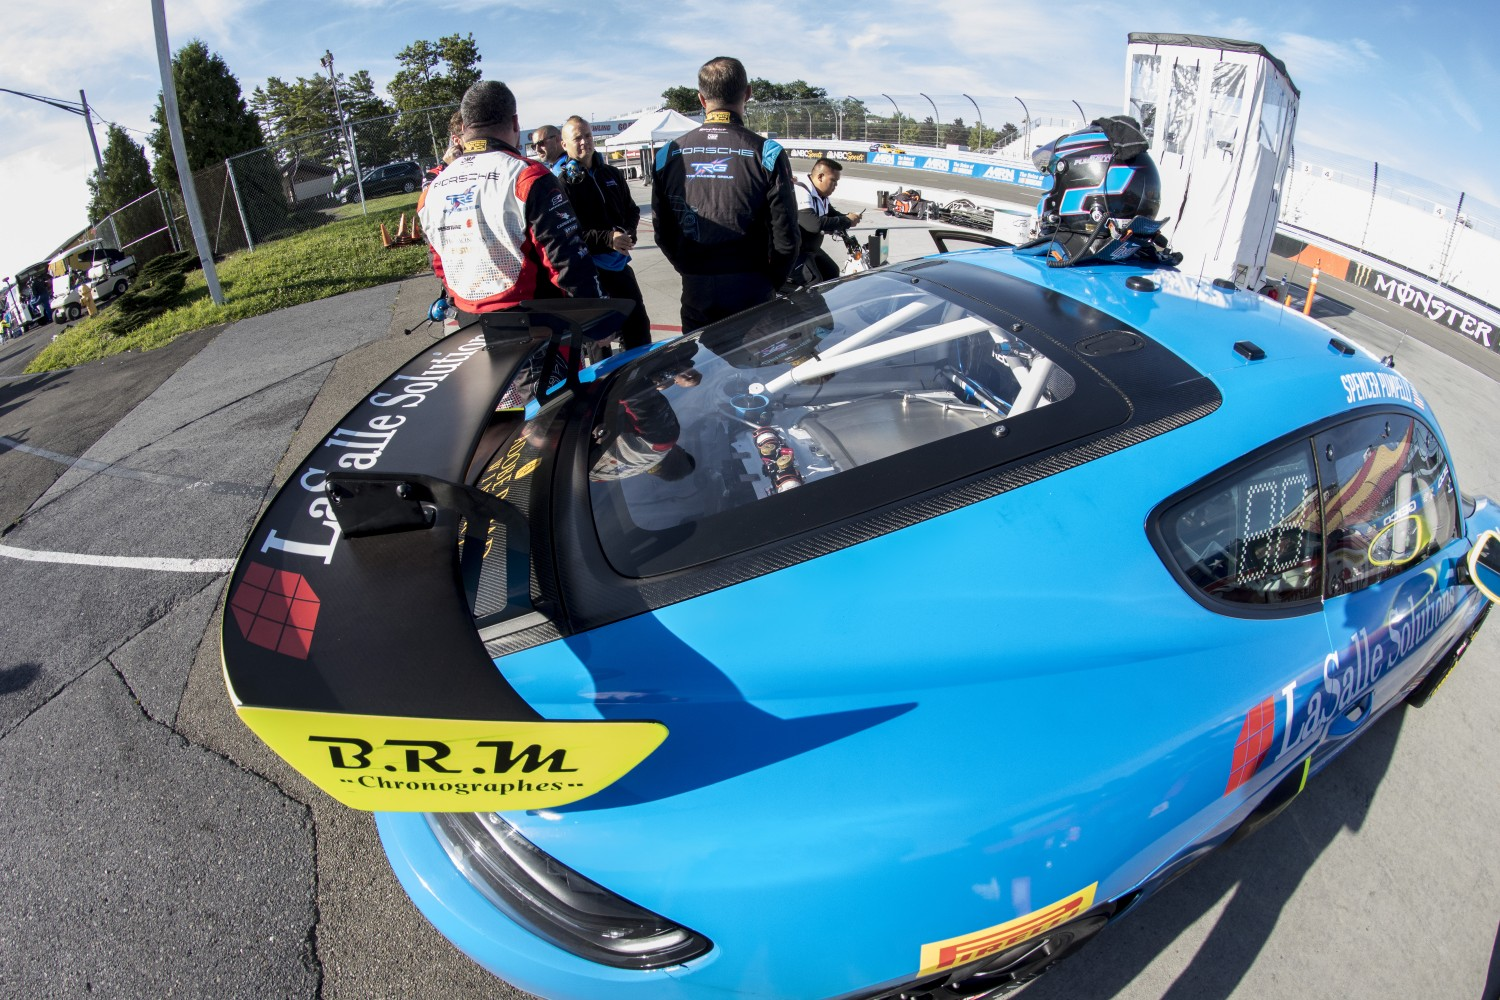 #66 Porsche 718 Cayman CS MR of Spencer Pumpelly, TRG- The Racers Group, Watkins Glen World Challenge America, Watkins Glen NY  | Brian Cleary/SRO